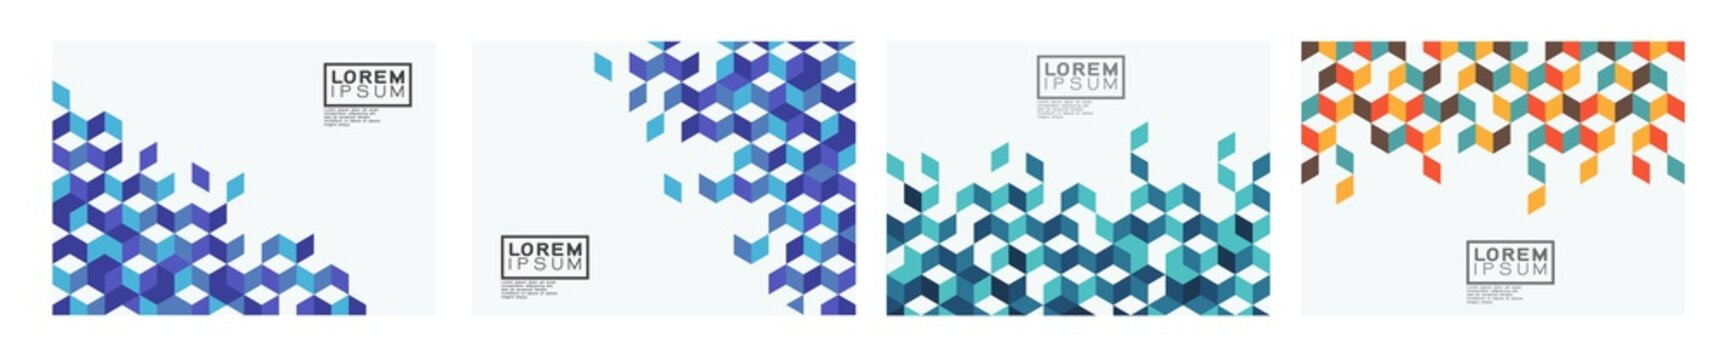 Set of template with colorful square pattern on corner position and white space. Modern geometric background for business or corporate presentation. Vector illustration